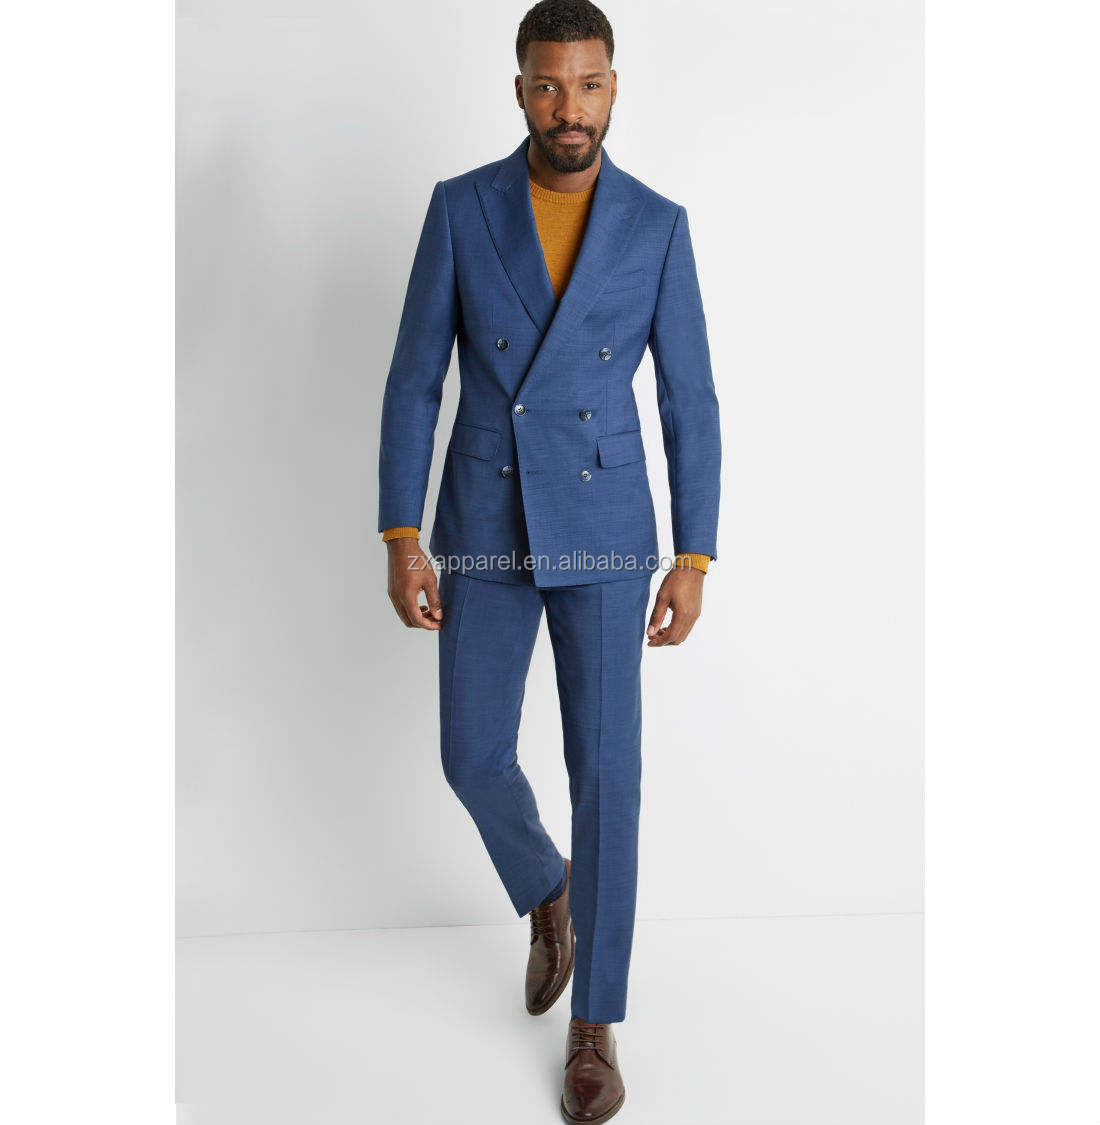 Western style Comfortable and fantastic navy blue tuxedo